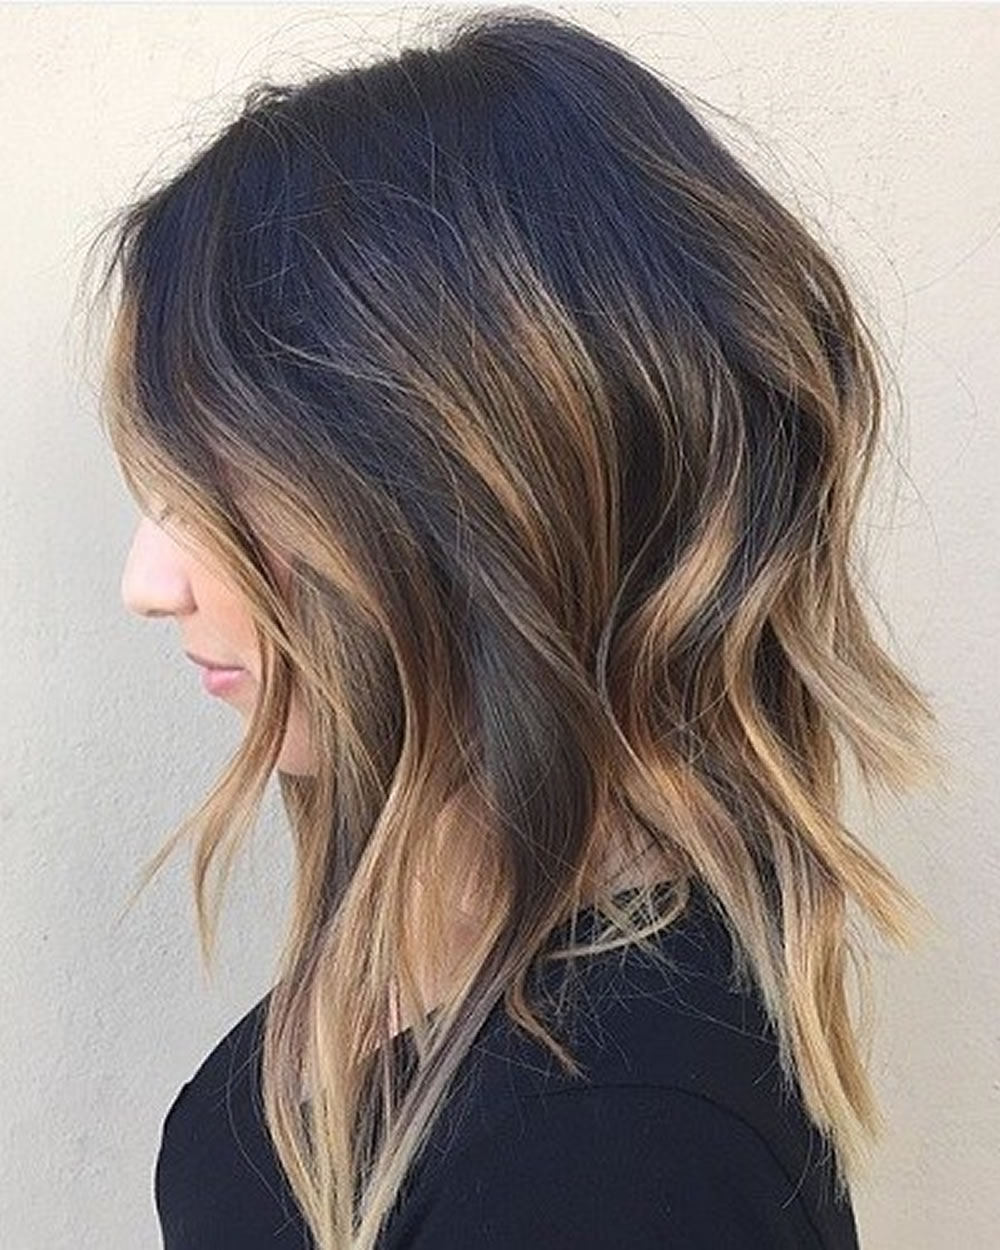 Asymmetrical Short Haircuts With Balayage Highlights 2018 – 2019 Pertaining To Most Recent Balayage Pixie Haircuts With Tiered Layers (Gallery 10 of 15)